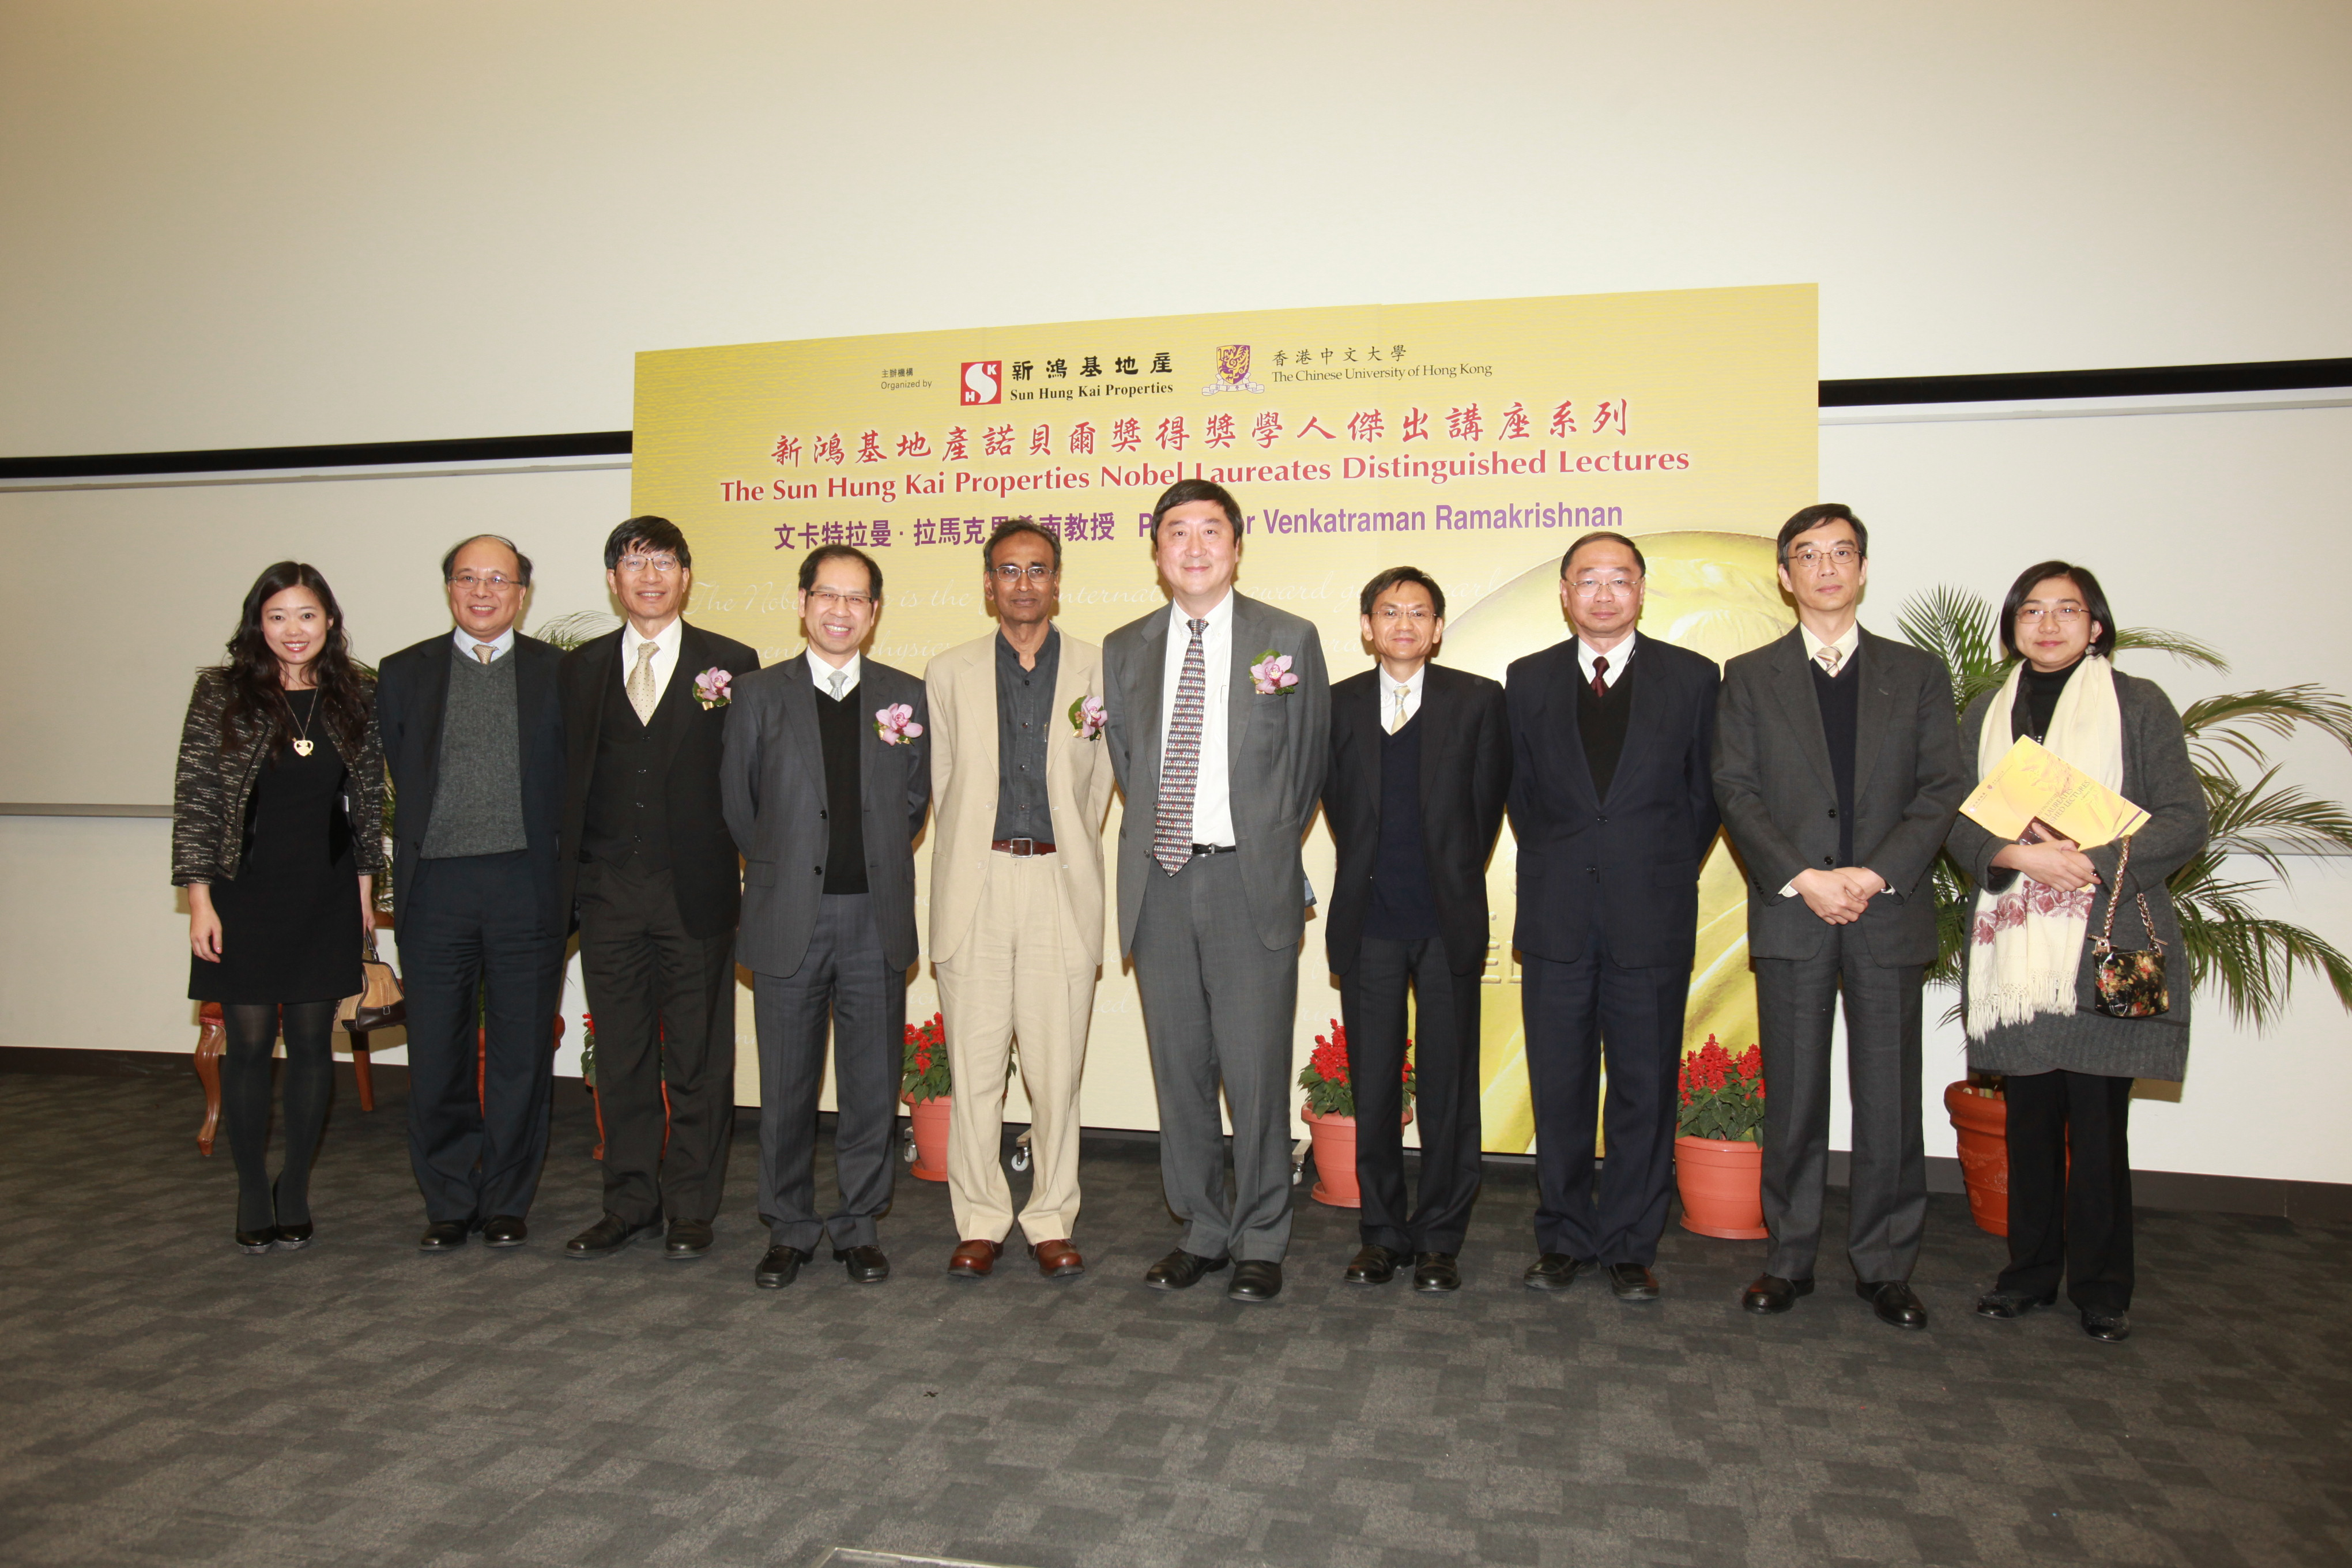 From left: Ms. Amy Tsui, Director of Communications and Public Relations, CUHK; Prof. Chu Ka Hou, Acting Director, School of Life Sciences, CUHK; Prof. Kenneth Young, Pro-Vice-Chancellor, CUHK; Mr. Patrick Chan, Executive Director and Chief Financial Officer, SHKP; Prof. Venkatraman Ramakrishnan, 2009 Nobel Laureate in Chemistry; Prof. Joseph Sung, Vice-Chancellor, CUHK; Mr. Mak Nak Keung, Corporate Planning and Investments Manager, SHKP; Prof. Henry Wong, Pro-Vice-Chancellor, CUHK; Prof. Shaw Pang Chui, Professor, School of Life Sciences, CUHK; and Ms. Janet Chow, Director of Institutional Advancement, CUHK